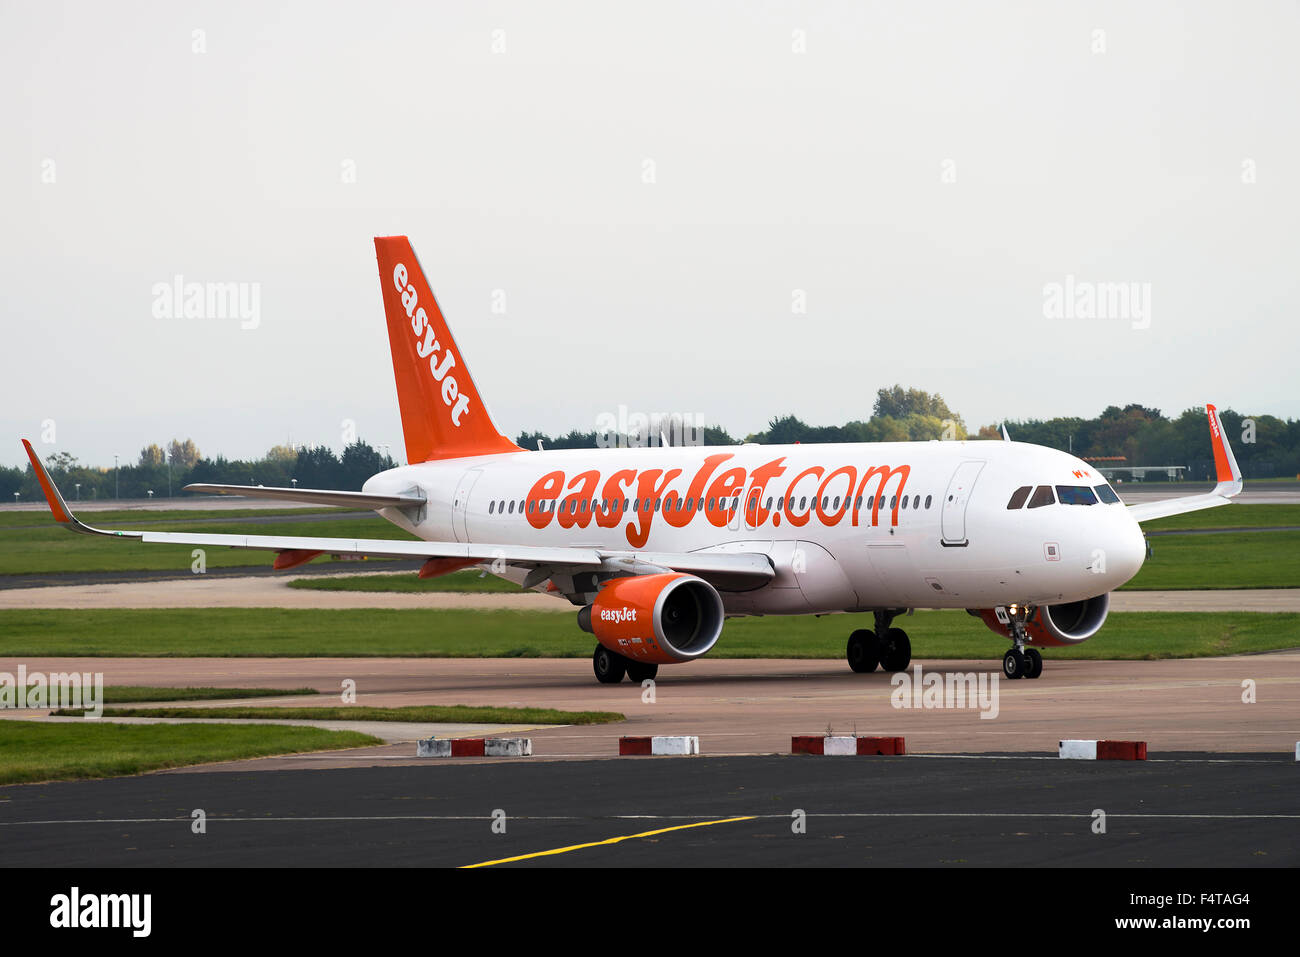 EasyJet Airline Airbus A320-214 Airliner G-EZWW Taxiing for Departure at Manchester International Airport England Stock Photo